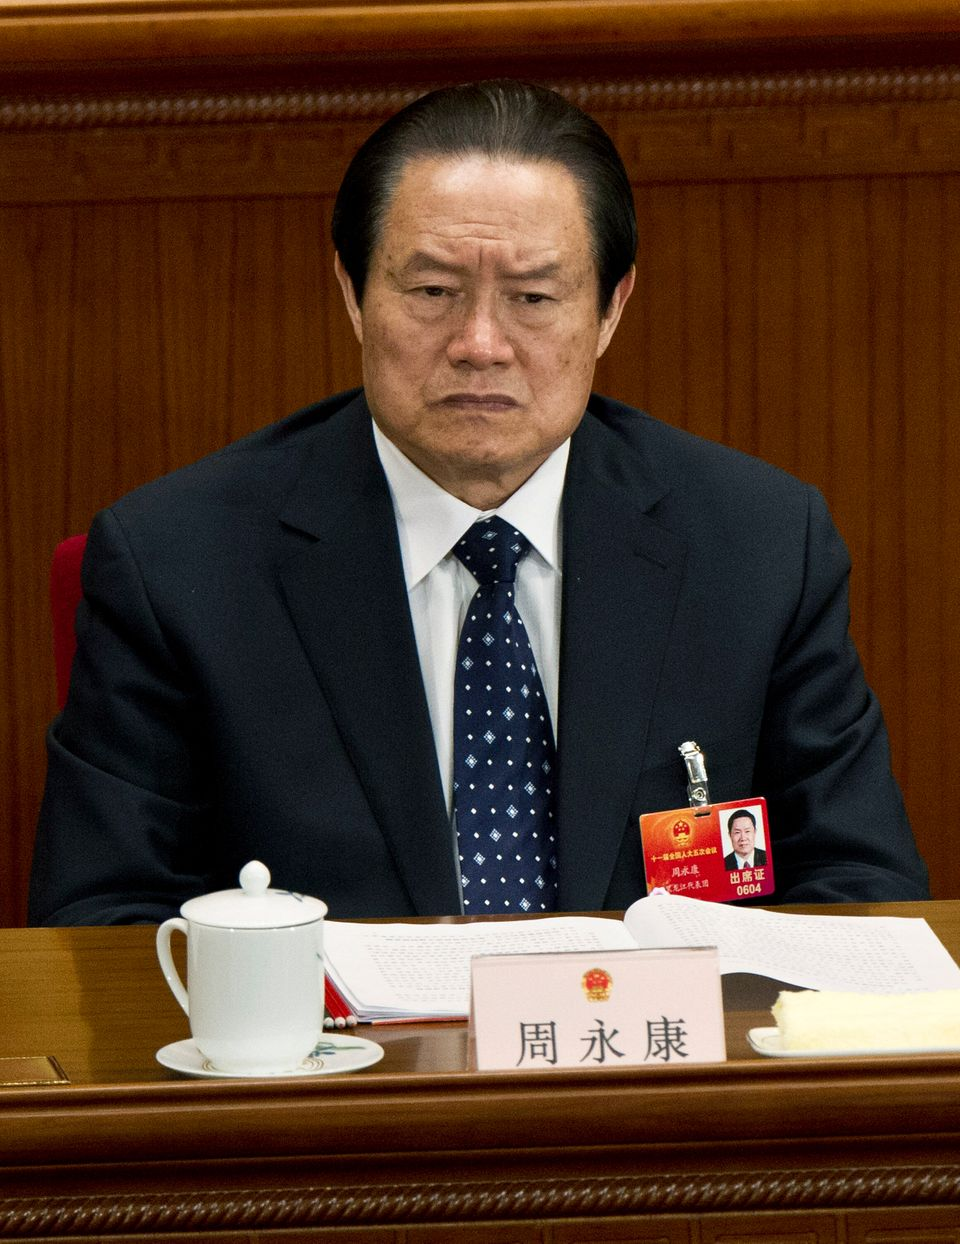 In this March 11, 2012 file photo, Zhou Yongkang, then Chinese Communist Party Politburo Standing Committee member in charge